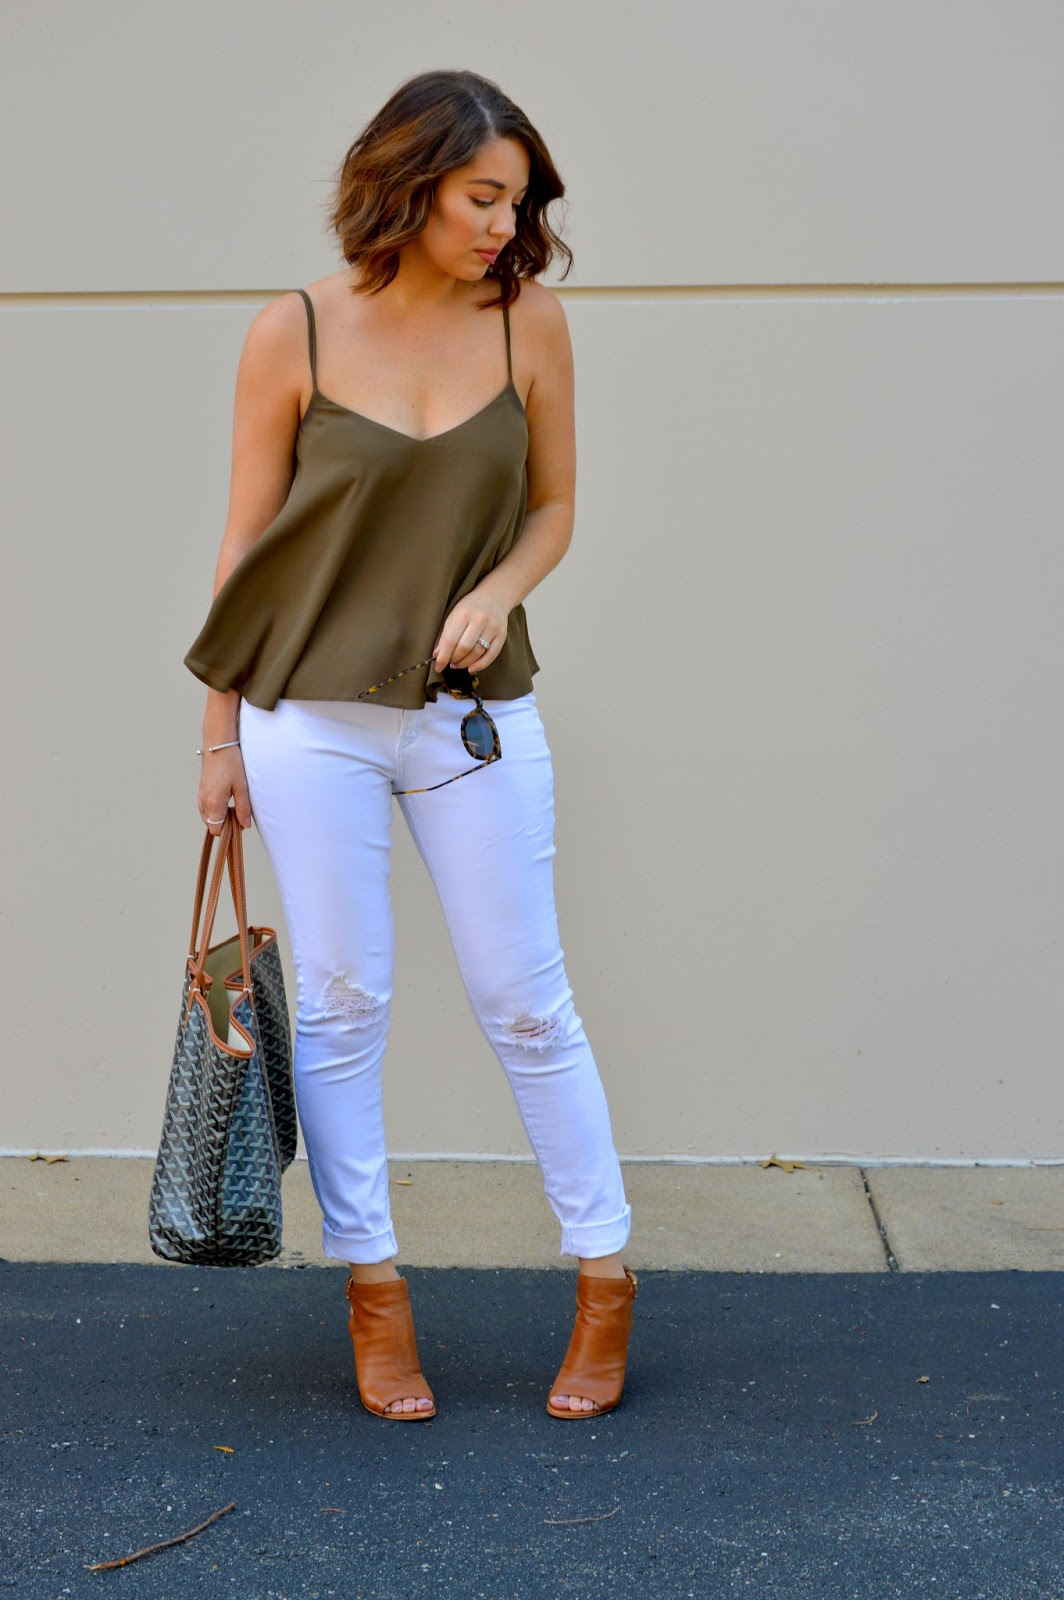 J s everyday fashion on twitter hateful comment re - Olive Camel Fashion Frenzy Link Up